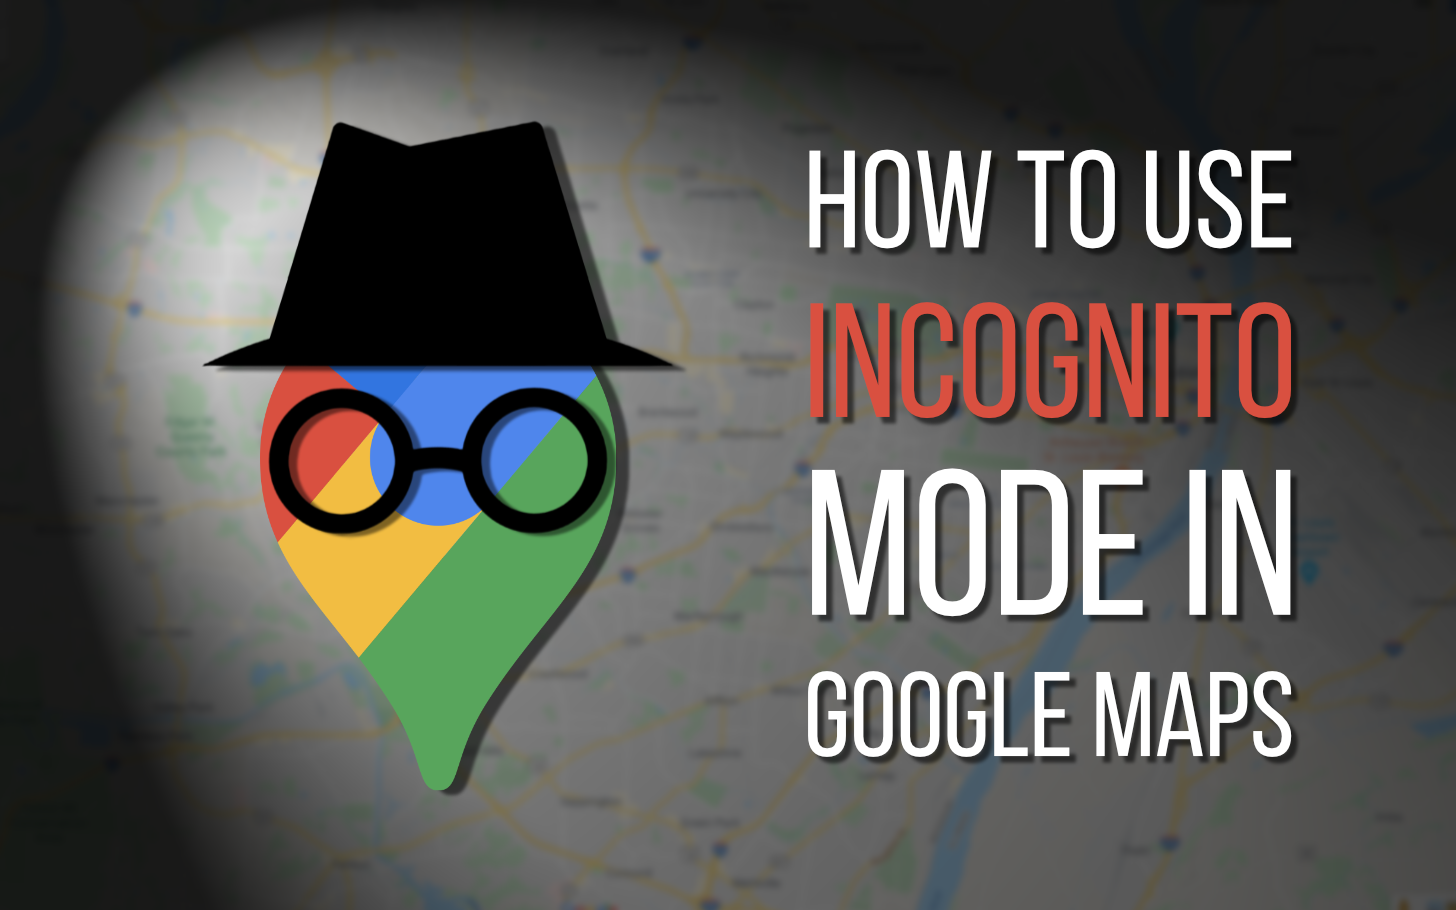 How To Use Google Maps Incognito Mode On Android In Four Easy Steps In 2020 Google Maps Map Incognito